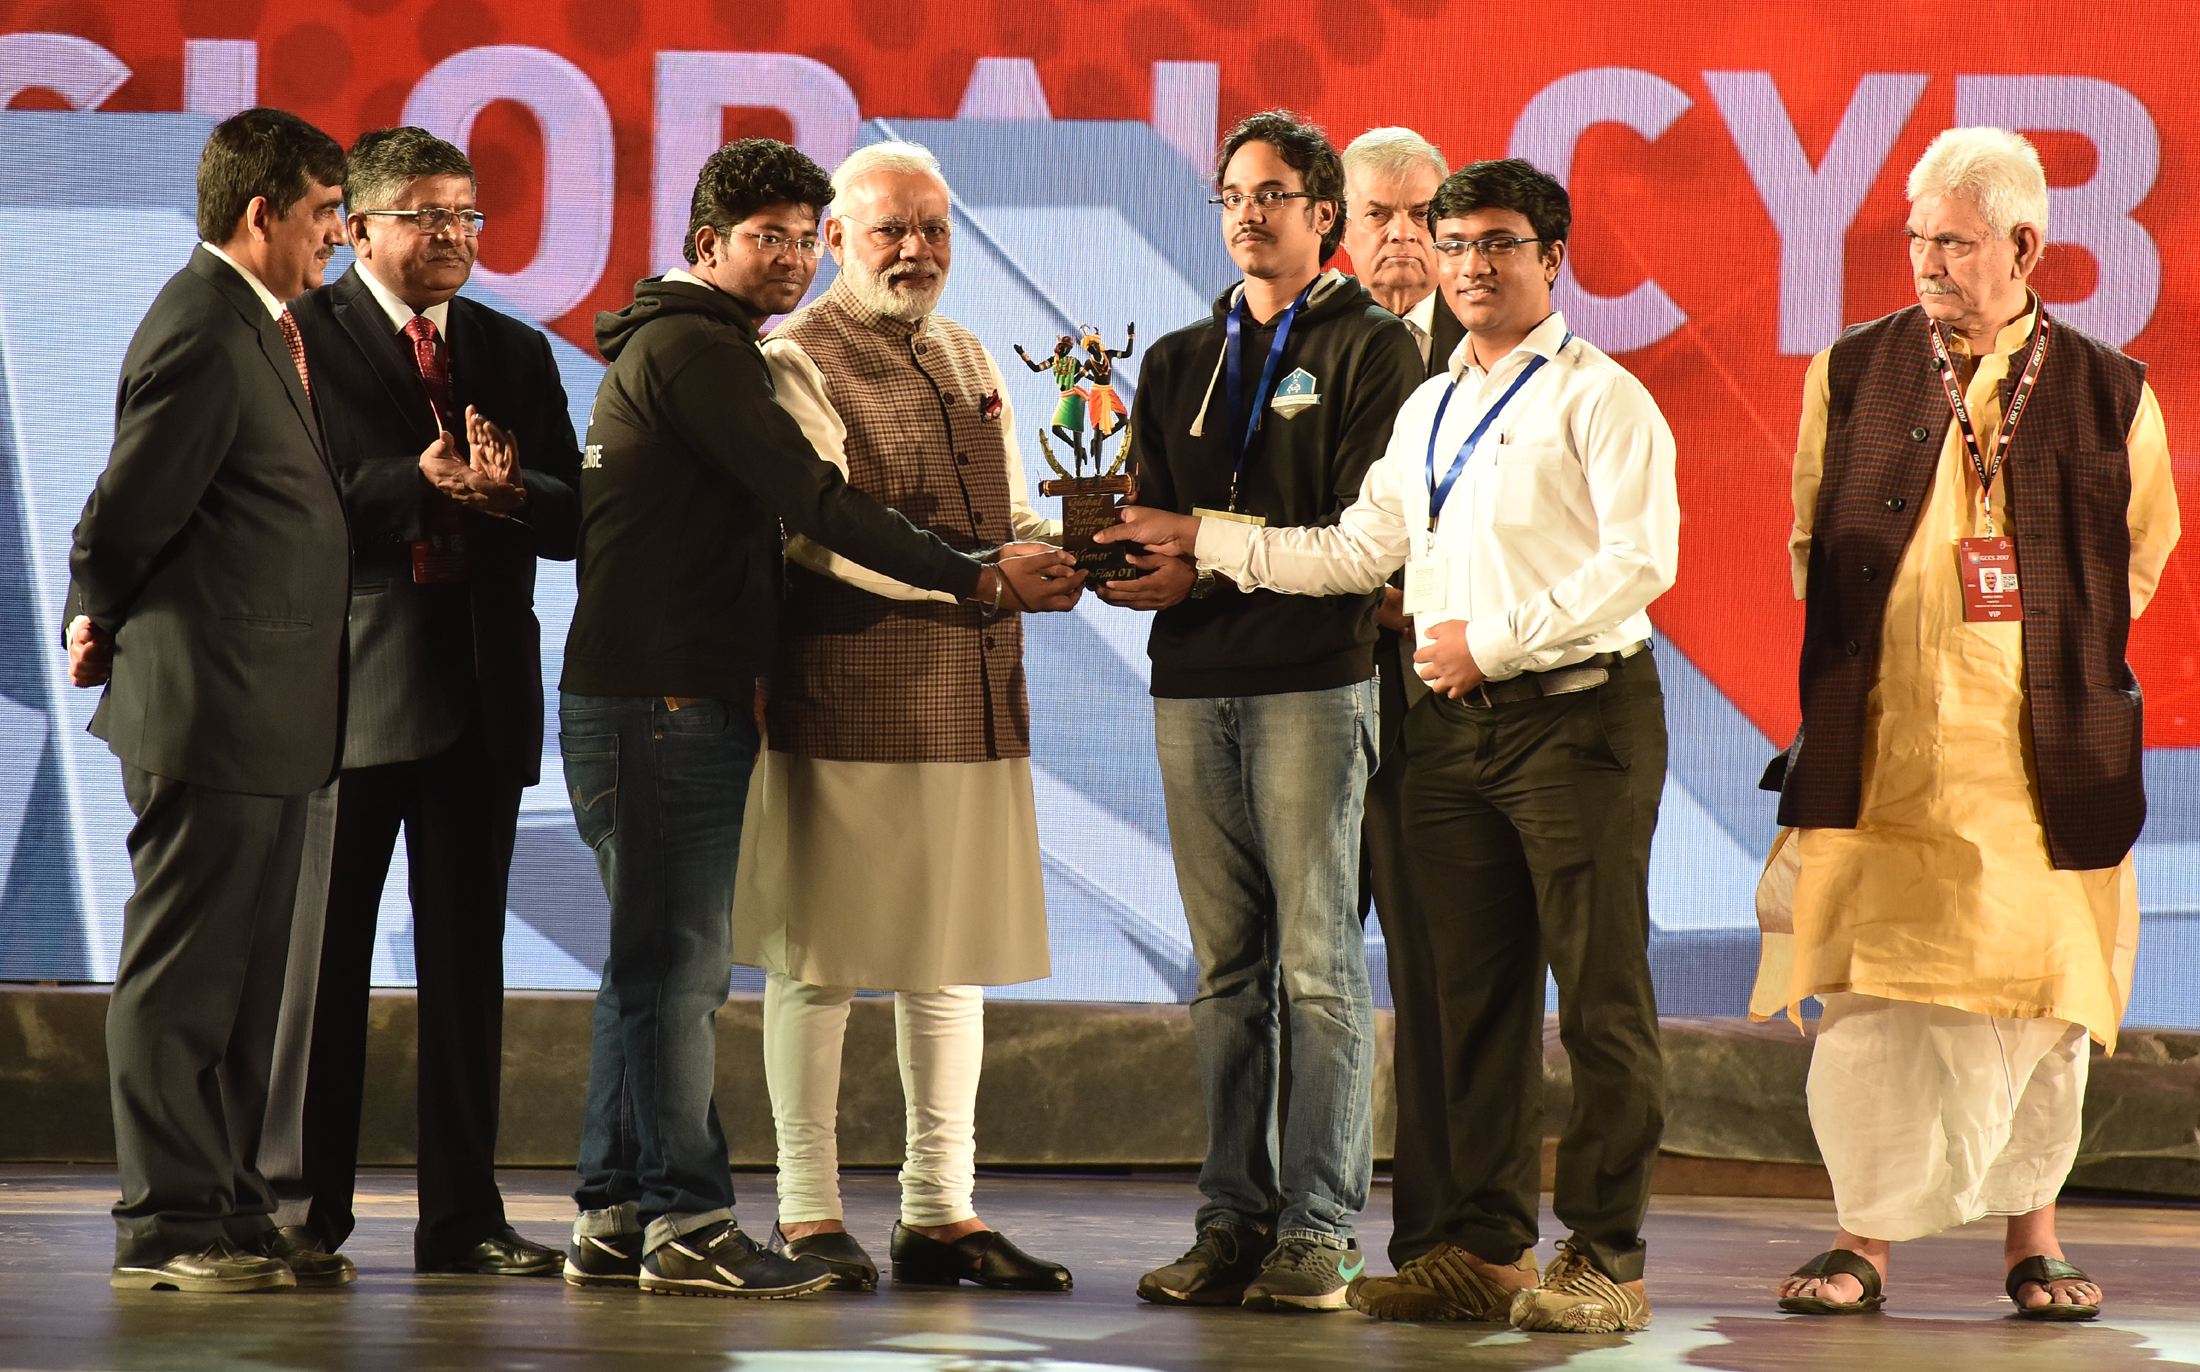 The Prime Minister, Shri Narendra Modi awarding the winners of cyber peace hackathon, at the inauguration ceremony of the 5th Global Conference on Cyber Space (GCCS2017), at Aerocity, in New Delhi on November 23, 2017. The Prime Minister of the Democratic Socialist Republic of Sri Lanka, Mr. Ranil Wickremesinghe, the Union Minister for Electronics & Information Technology and Law & Justice, Shri Ravi Shankar Prasad and the Minister of State for Communications (I/C) and Railways, Shri Manoj Sinha are also seen.